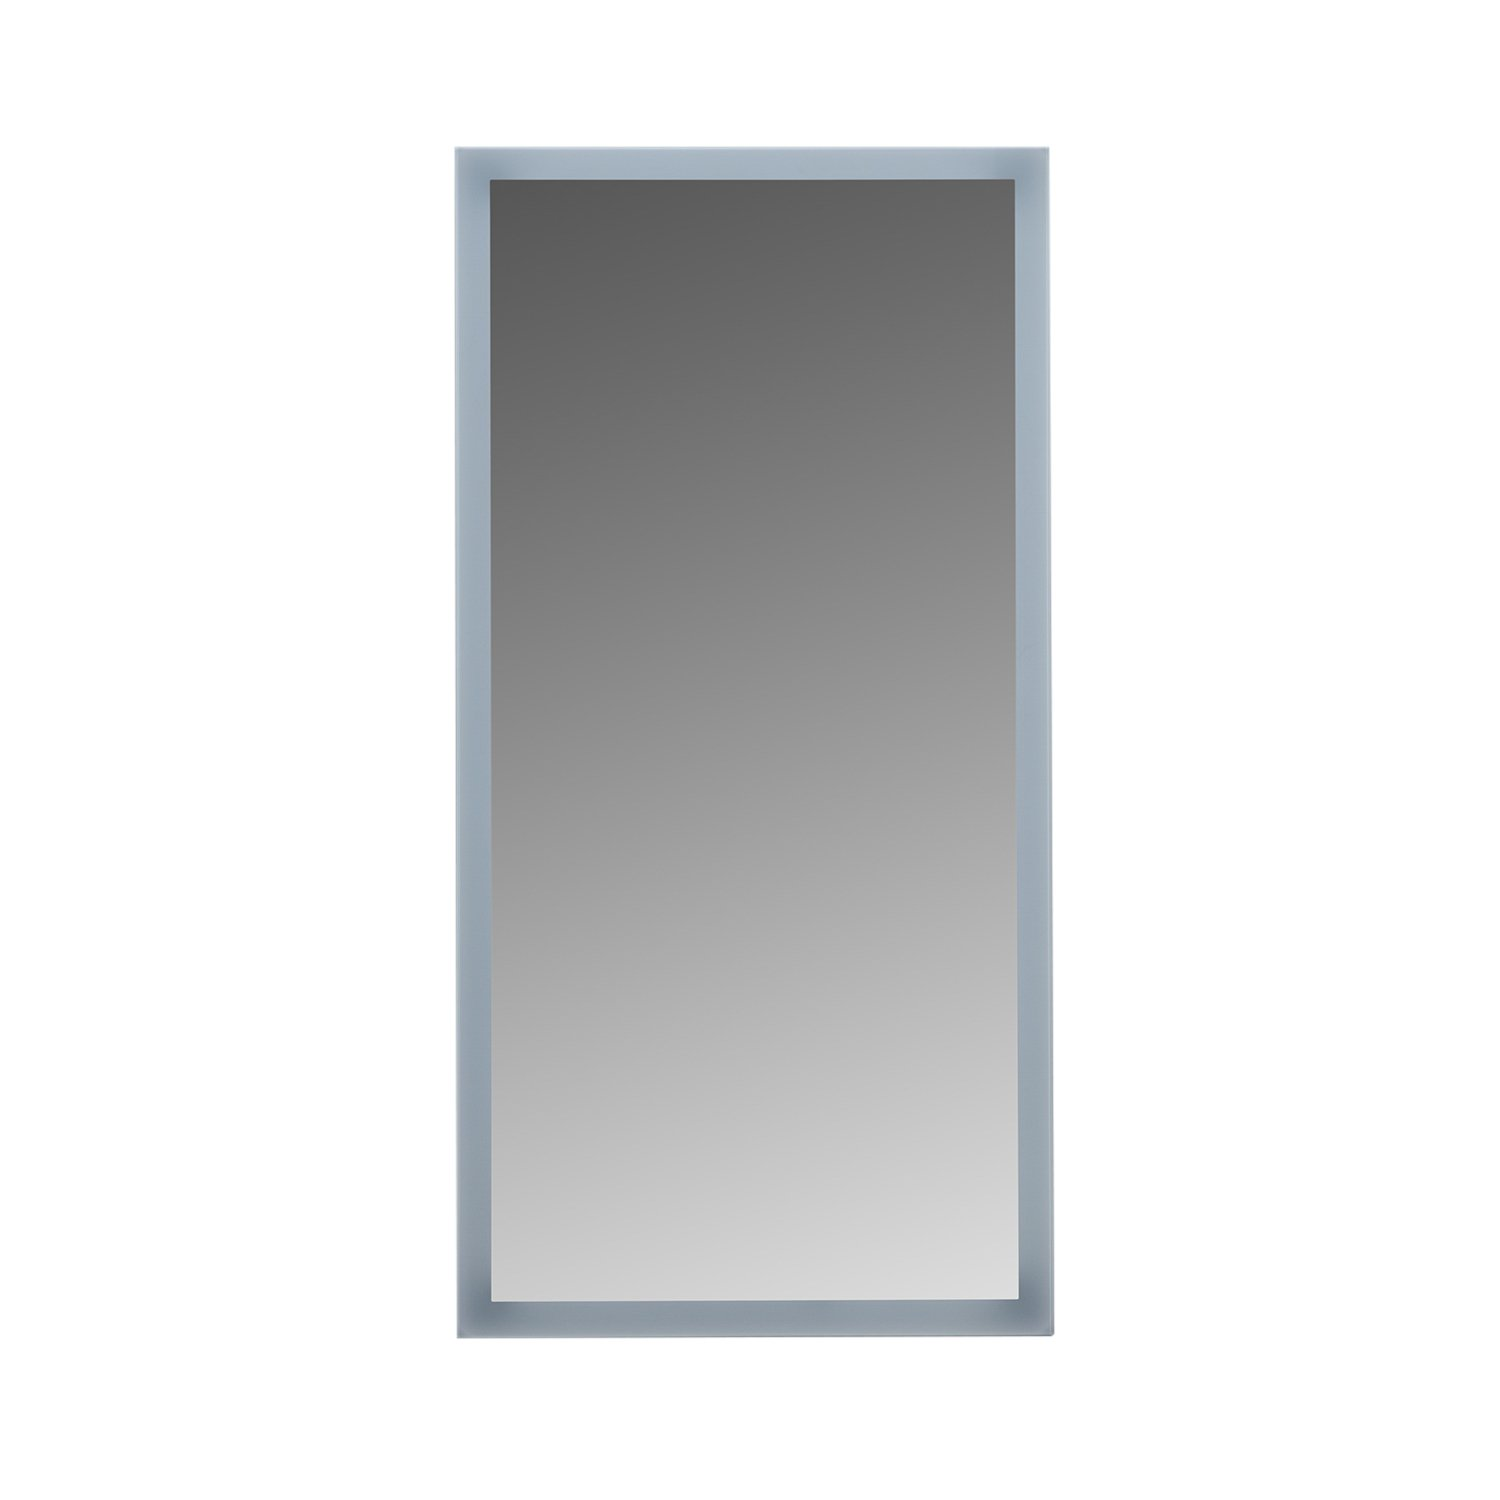 "MAYKKE Isabella 20"" W x 40"" H LED Mirror, Wall Mounted Lighted Bathroom Vanity Mirror, Frameless Mirror, Horizontal or Vertical Mirror with LED Lighting Border UL Certified, LMA1002001"